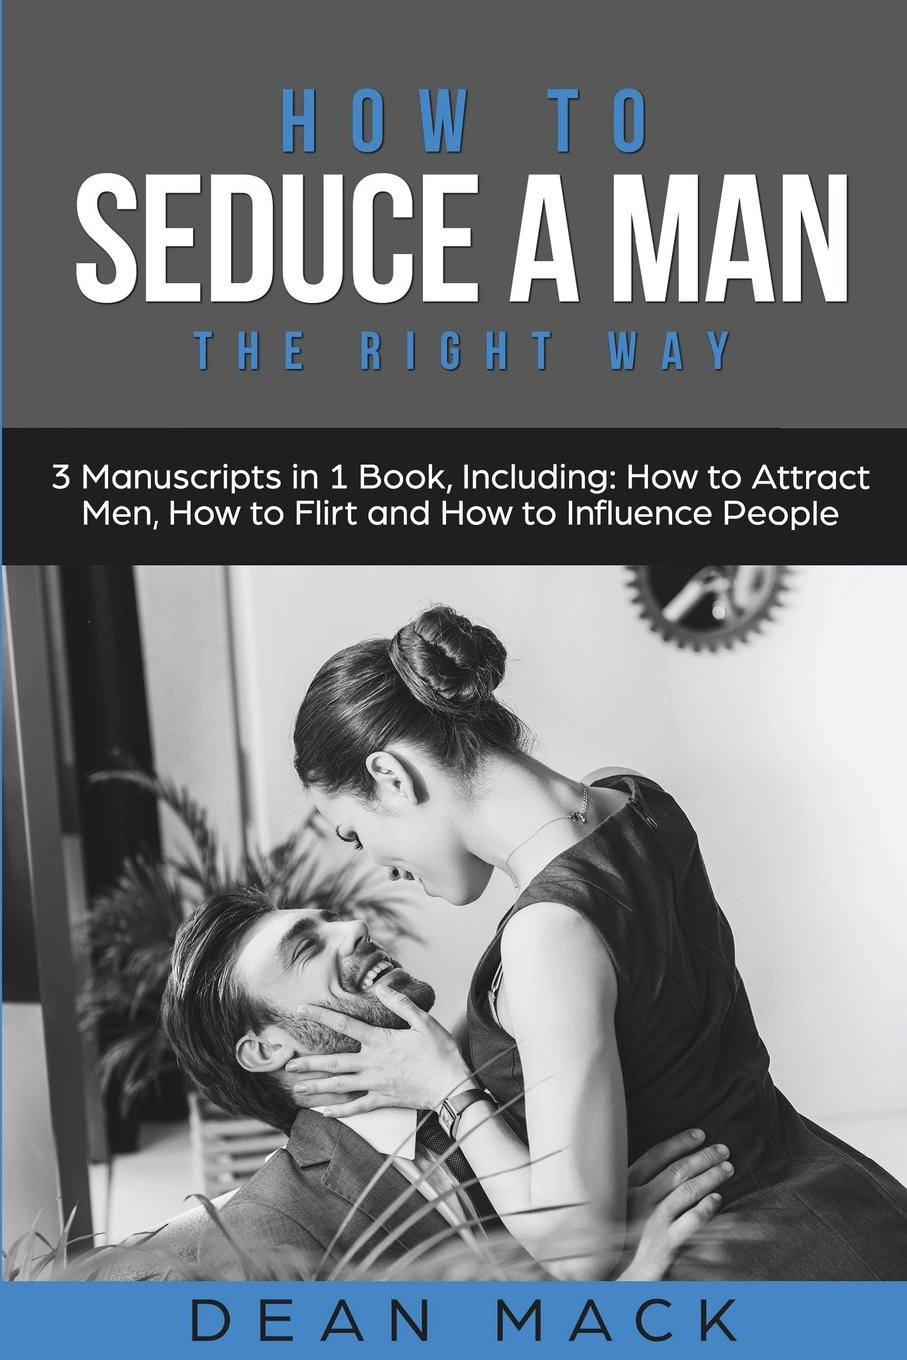 How to Seduce a Man: The Right Way - Bundle - The Only 3 Books You Need to Master How to Seduce Men, Make Him Want You and the Art of Seduction Today (Social Skills Best Seller) (Volume 17)